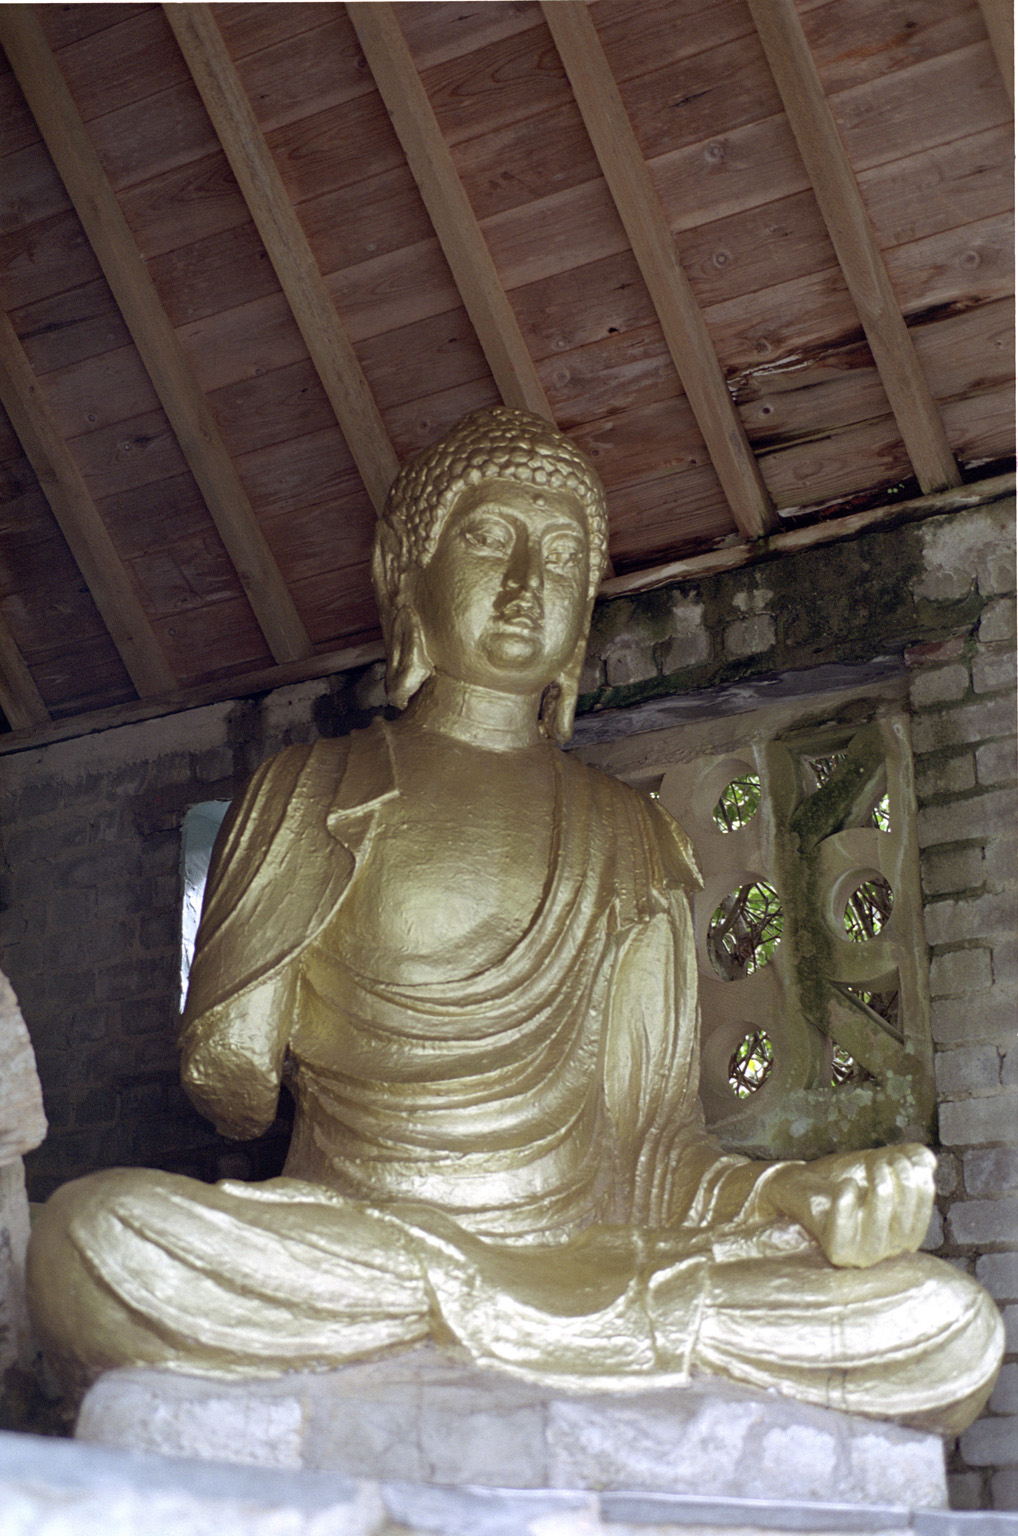 Seated Gold Buddha, a Gift to the Village of Portmeirion, a Popular Tourist Village in Gwynedd, North Wales